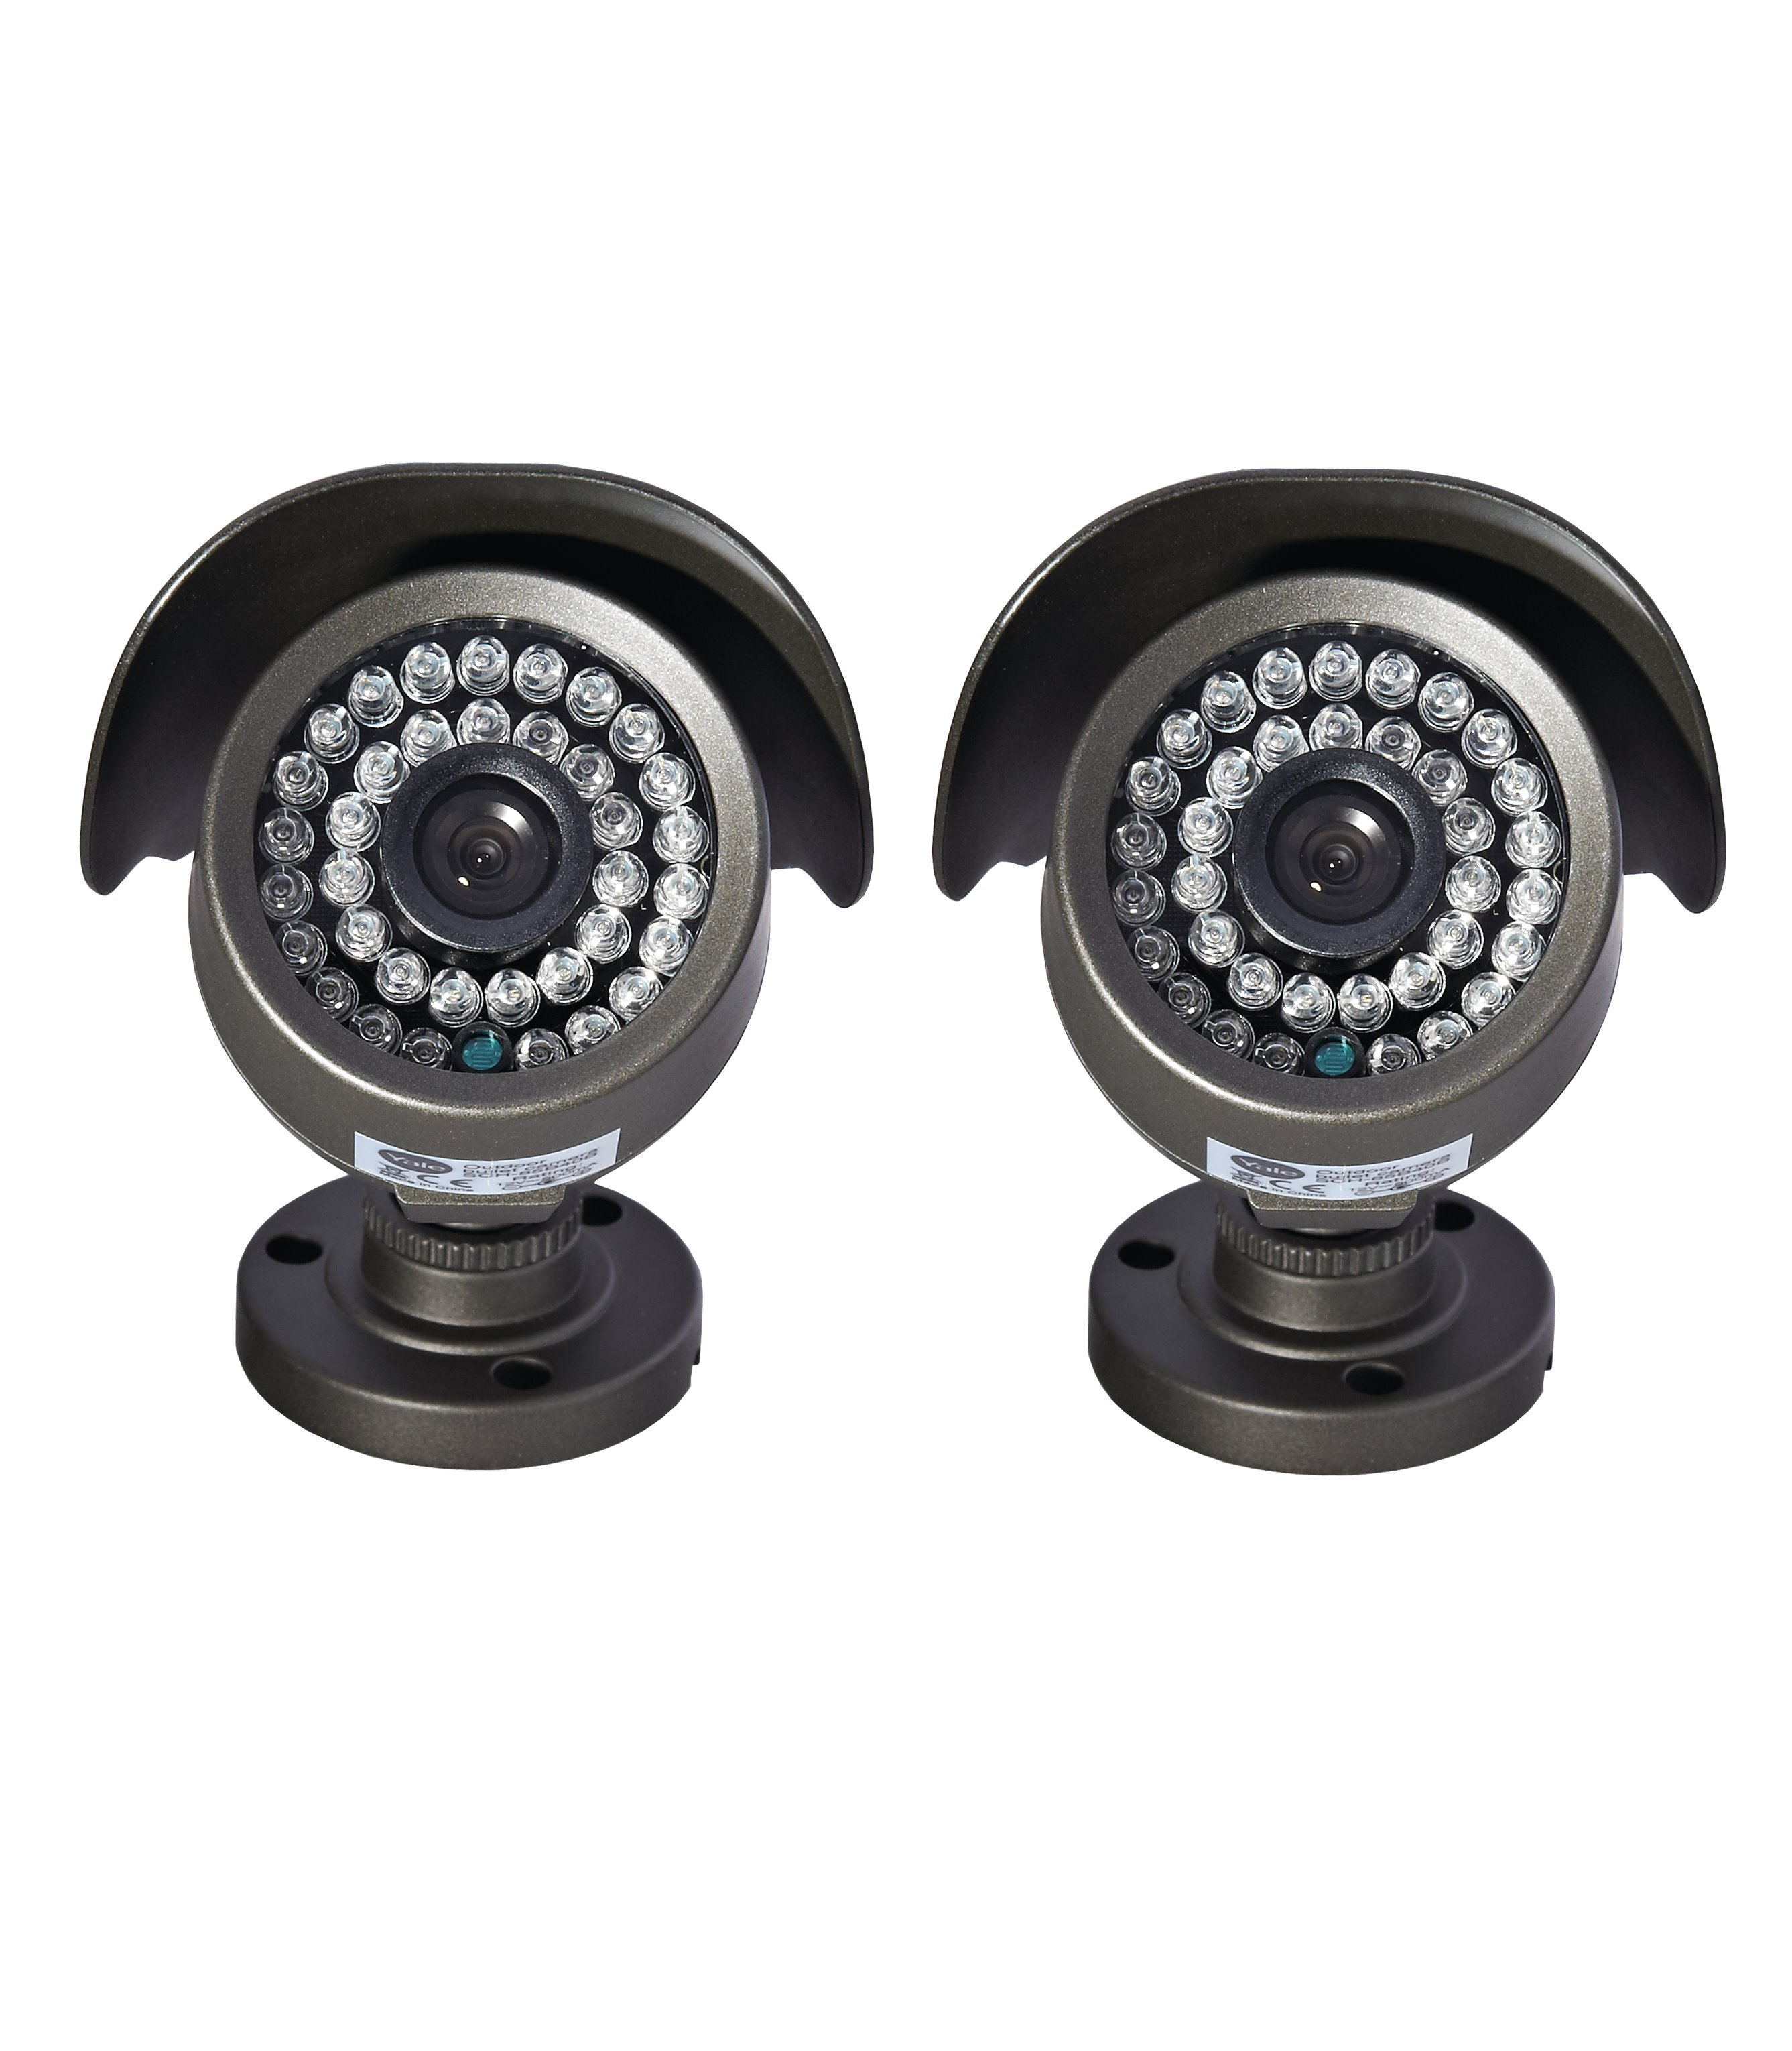 Yale HD720 Outdoor Camera Twin Pack